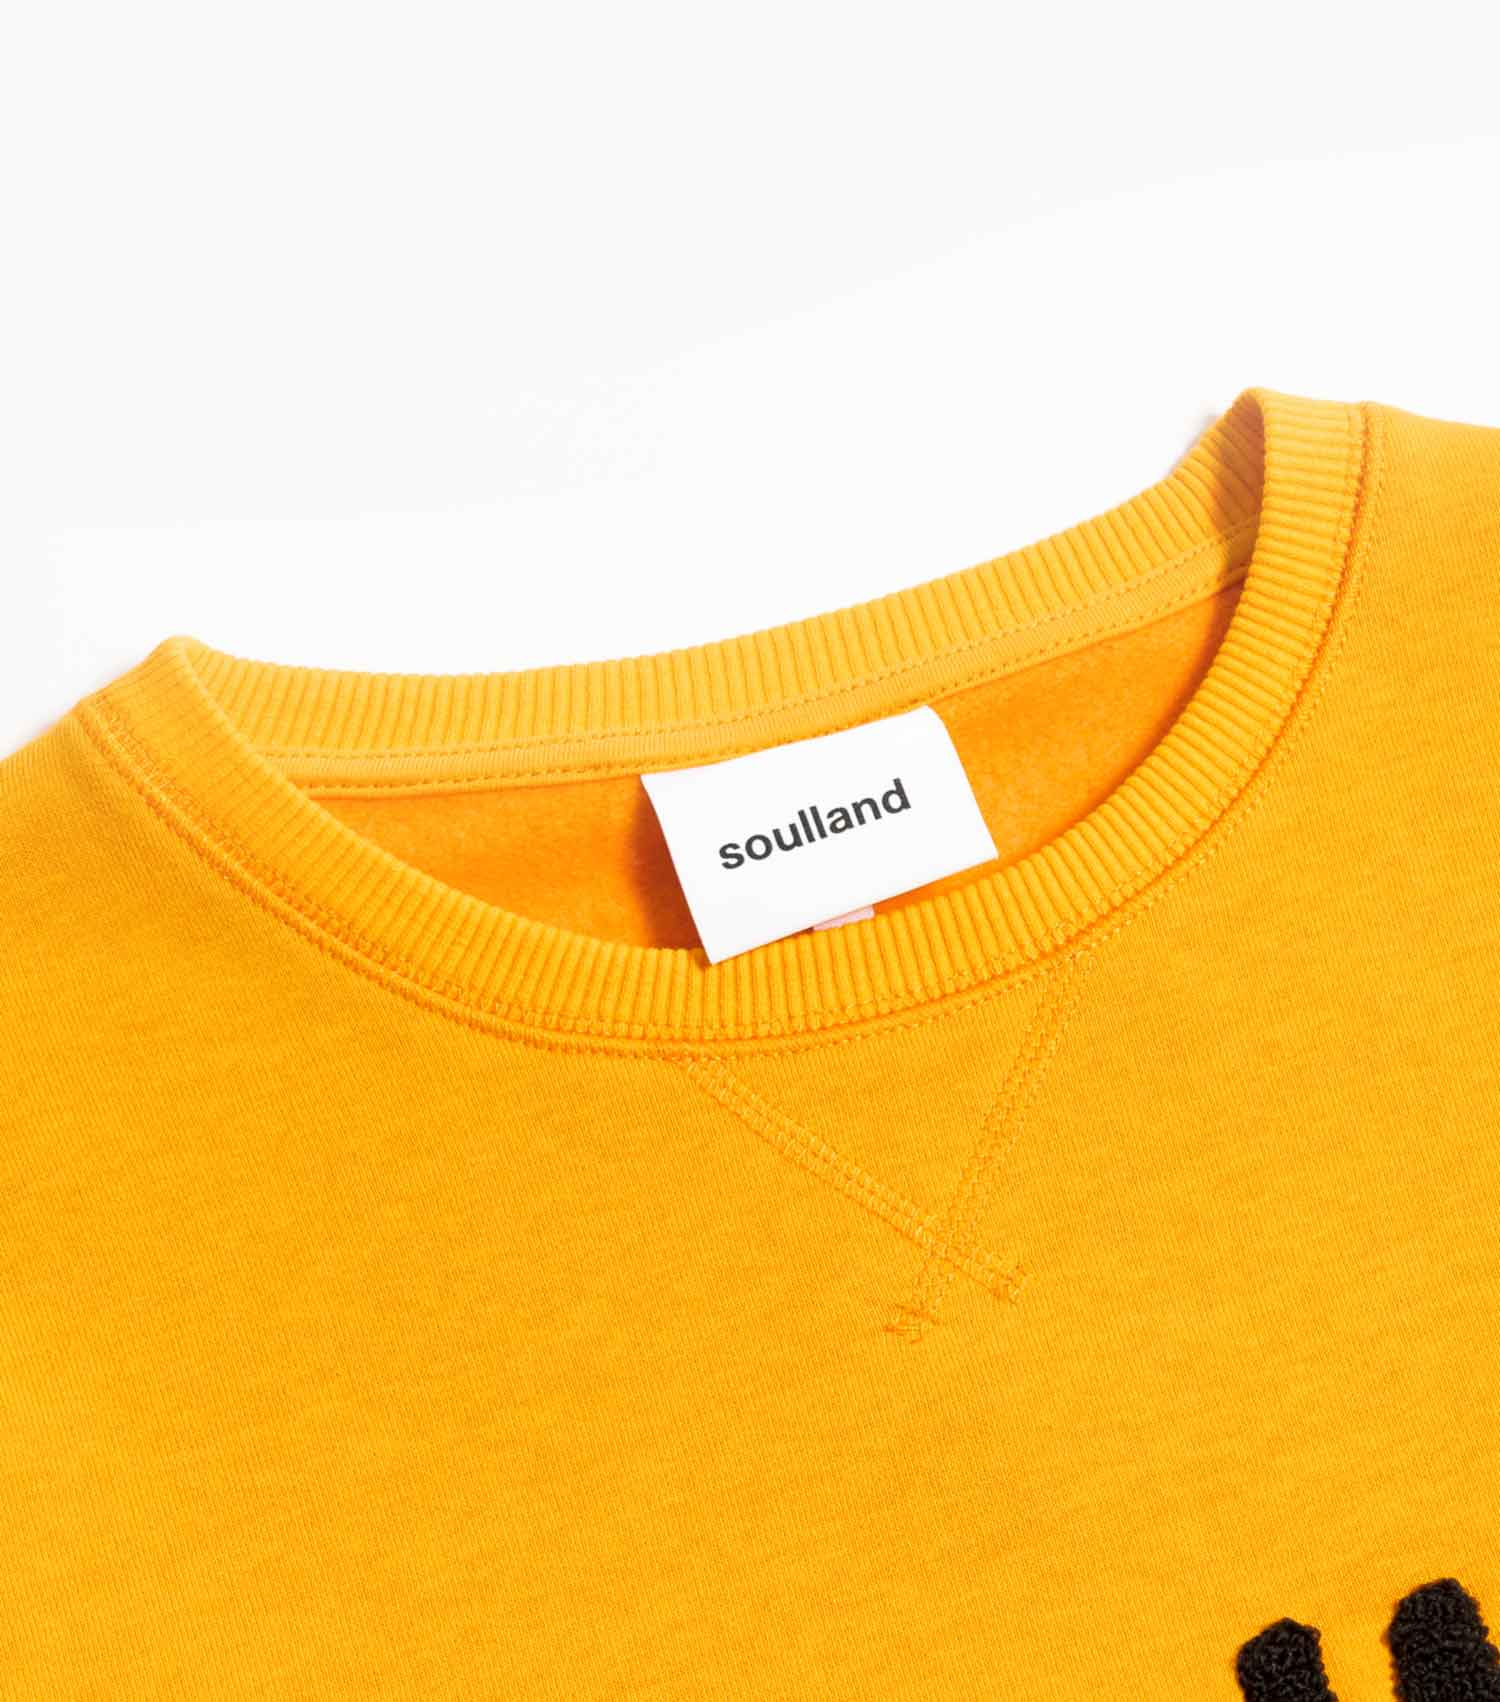 Soulland Normann Italian Brushed Fleece Sweatshirt - Orange Sweatshirt - CARTOCON